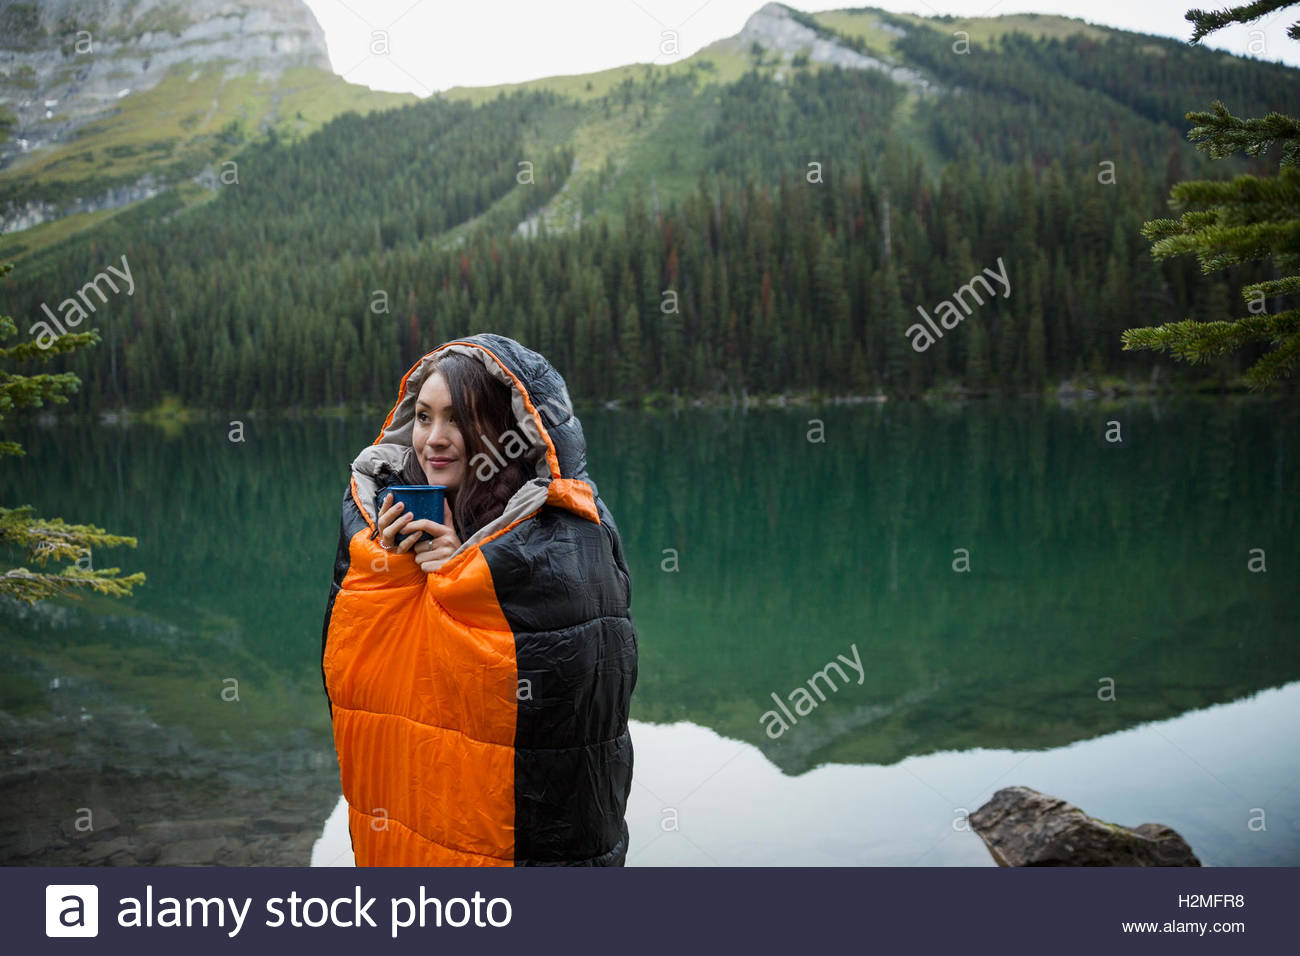 Woman standing in sleeping bag at remote lakeside - Stock Image